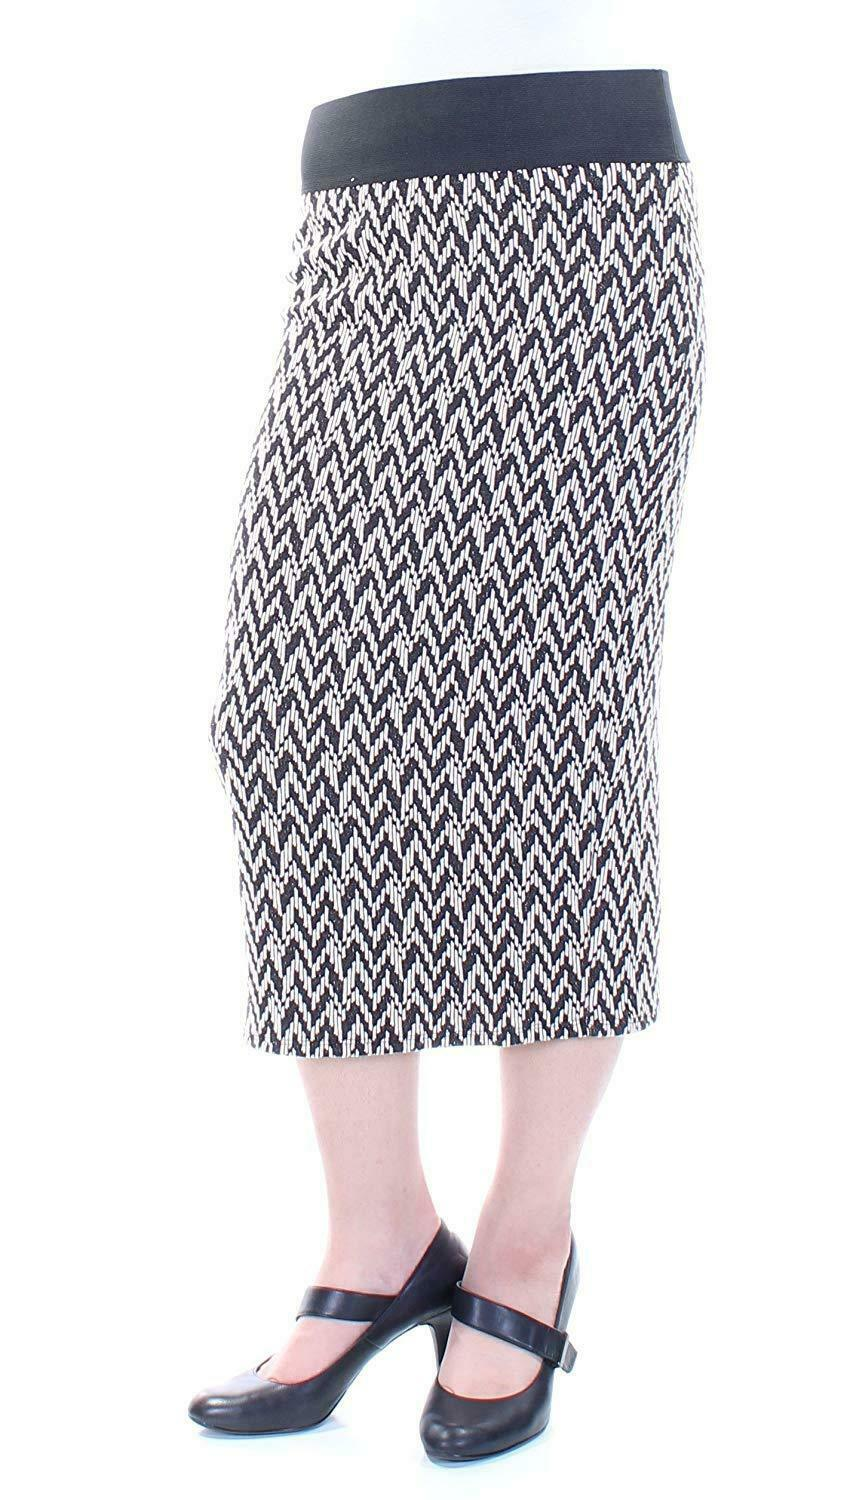 Chelsea Sky Womens Elastic Pattern Pencil Skirt